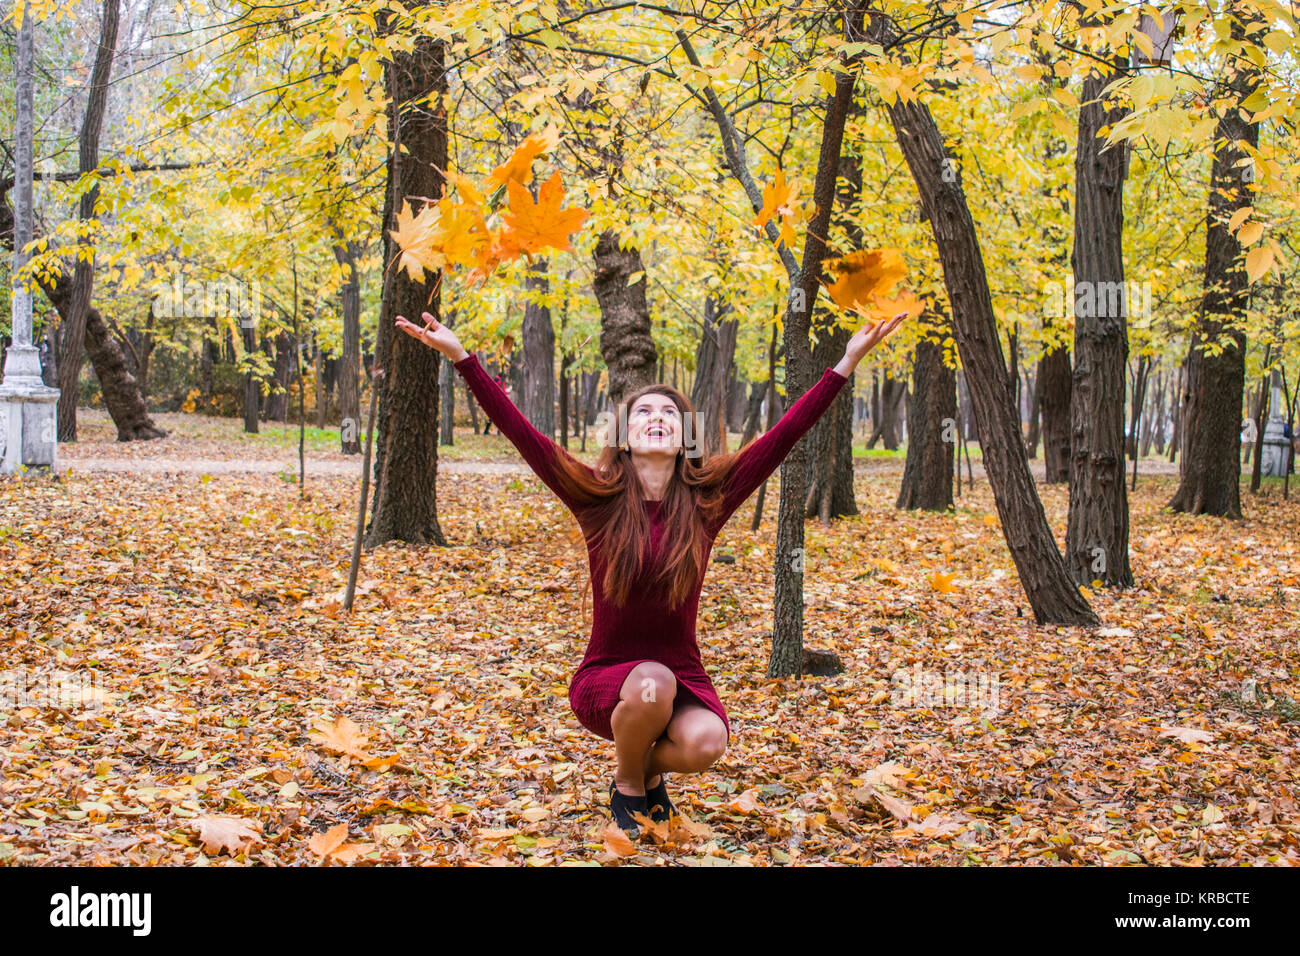 The woman crouched in the park in the fall and throws up yellow leaves. A lot of yellow leaves in the park. Happiness - Stock Image